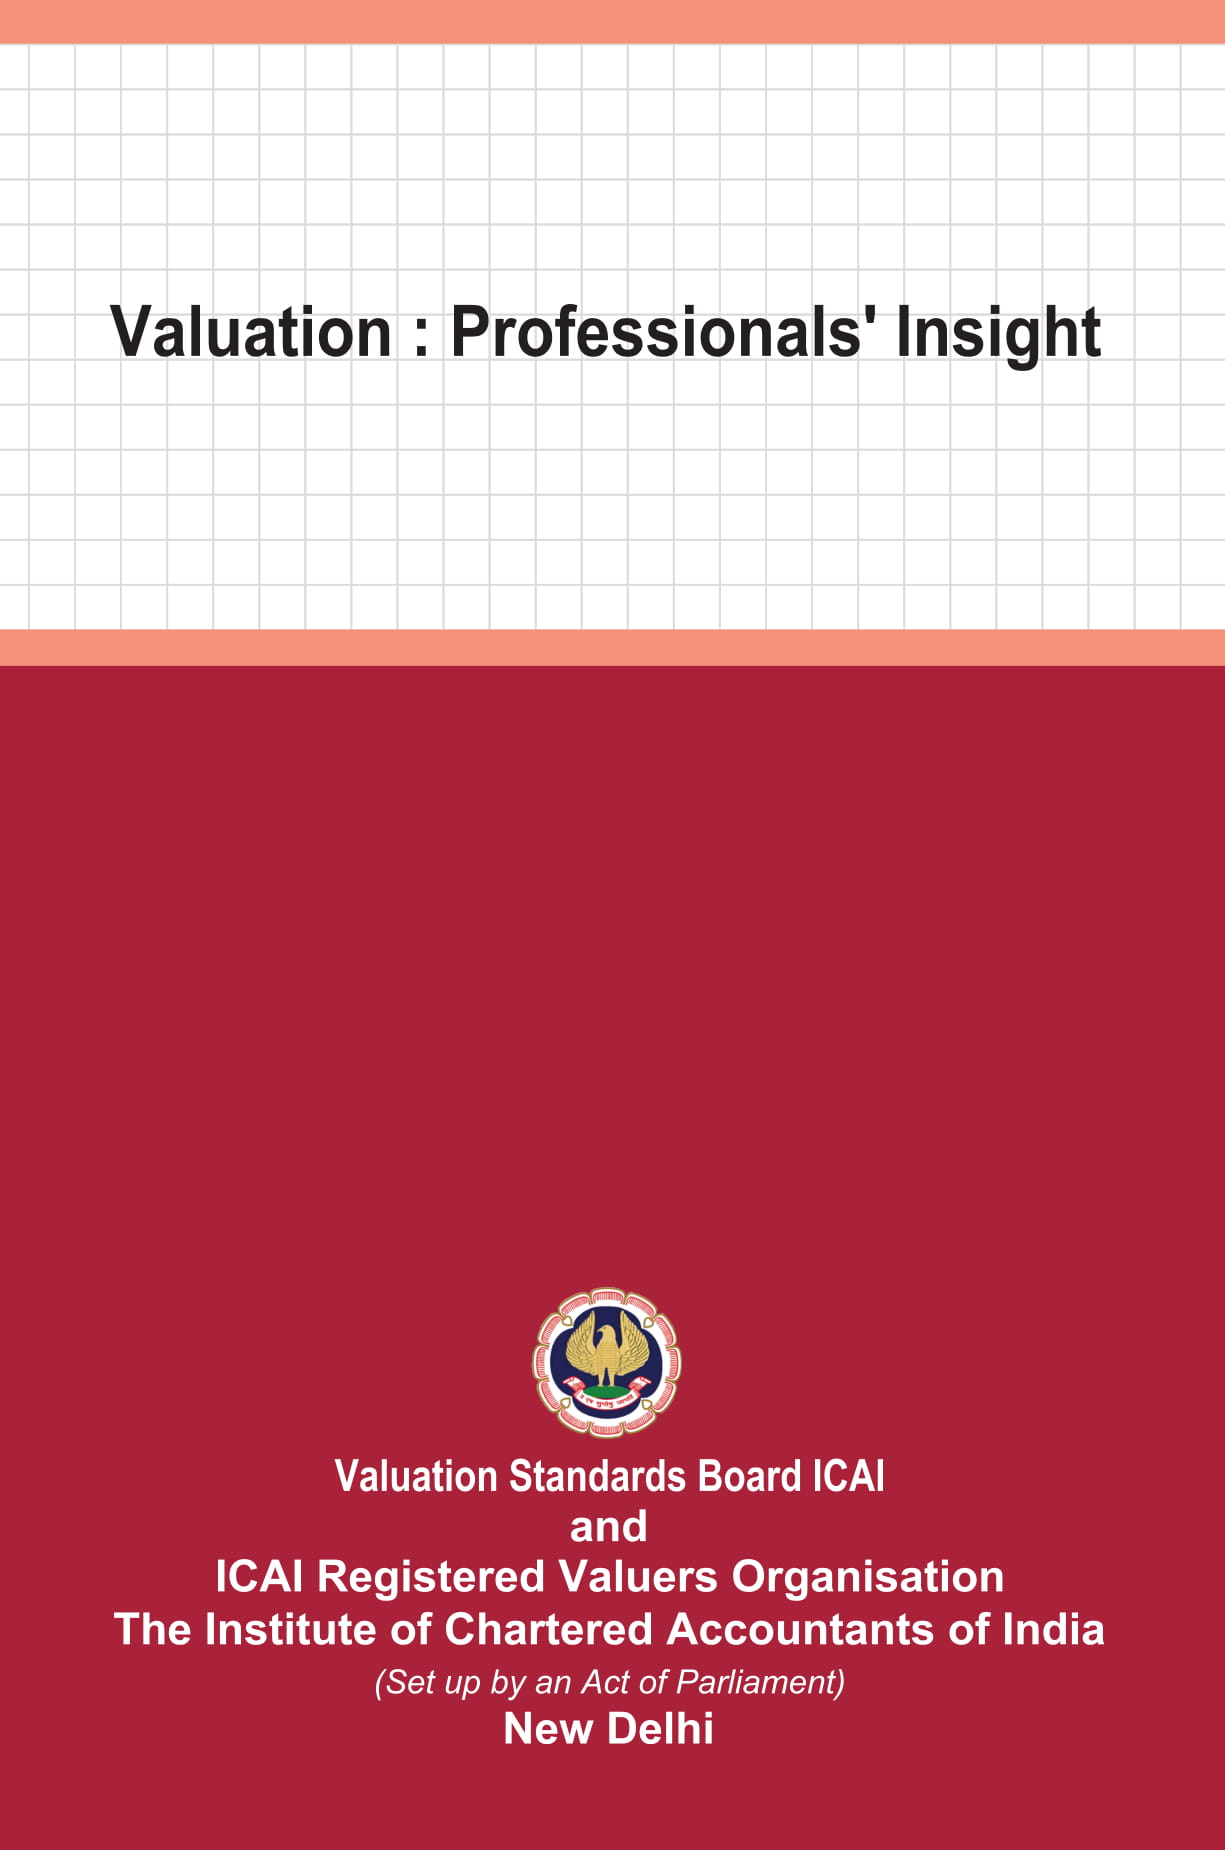 Valuation: Professionals' Insight (July, 2018)